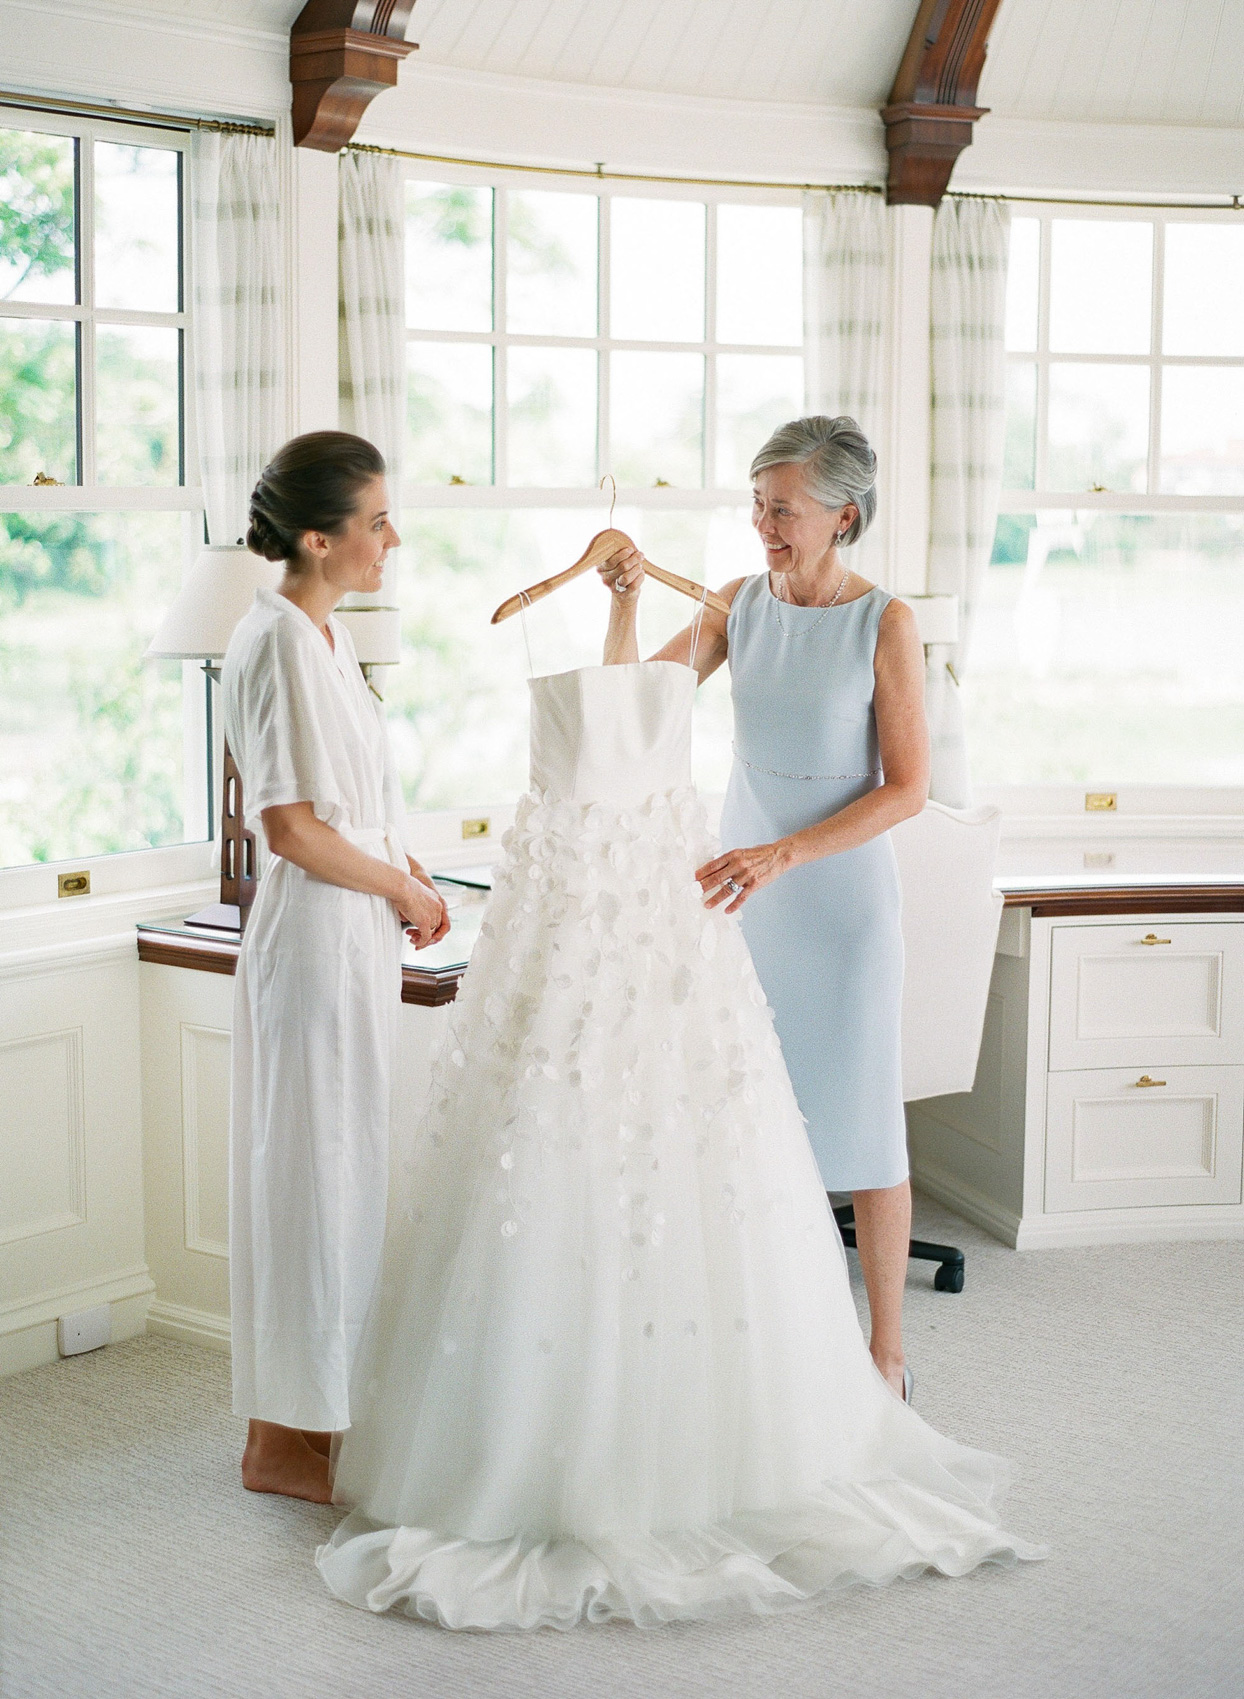 mother holding wedding dress with bride